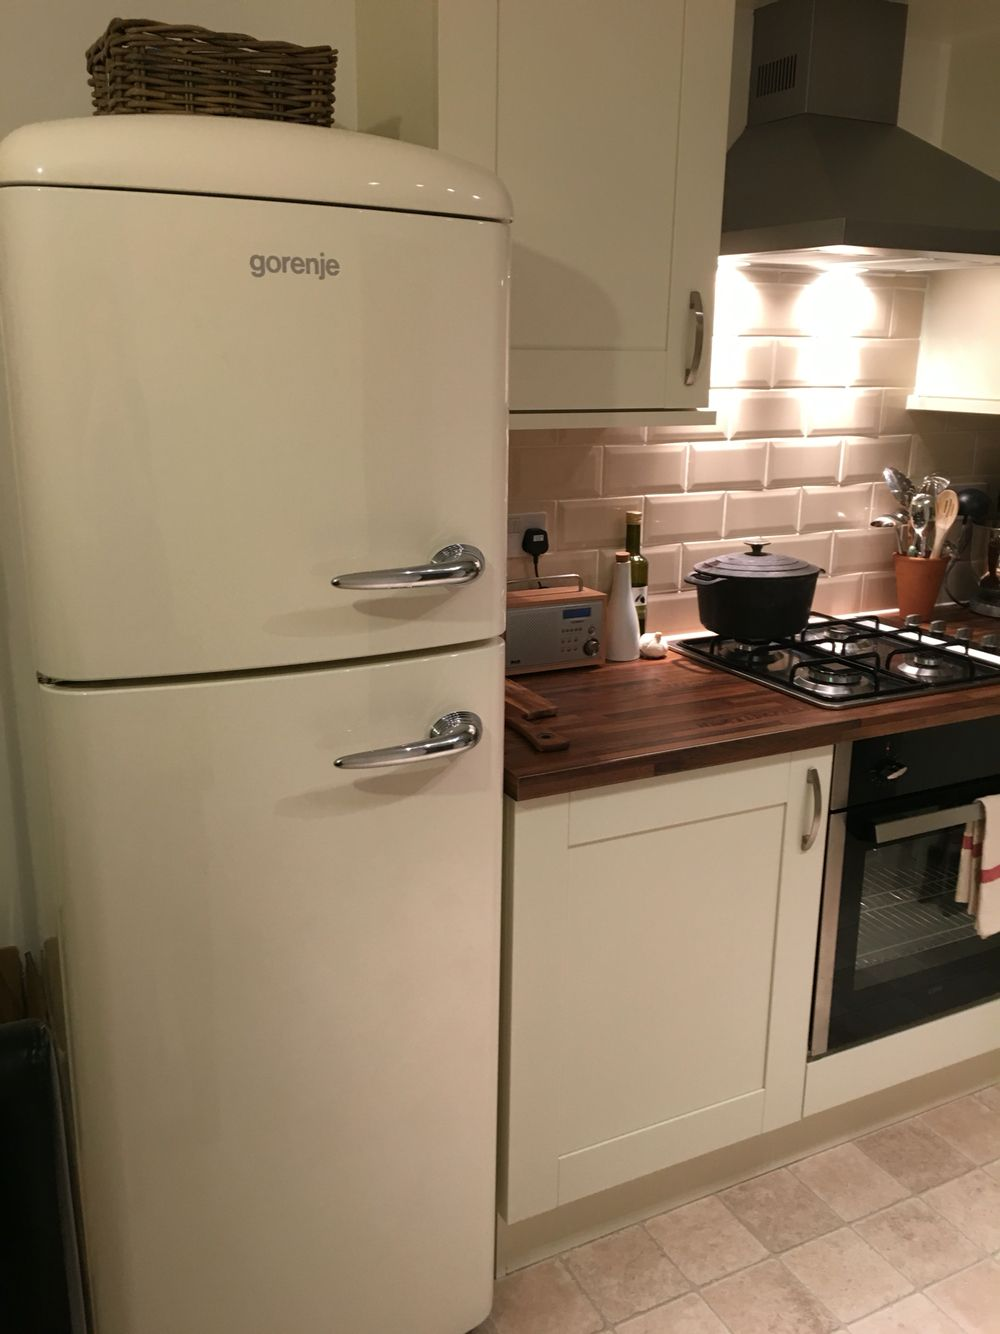 Cucina A Gas Smeg Vintage So Glad We Bought The Gorenje Instead Of The Smeg It S Beautiful